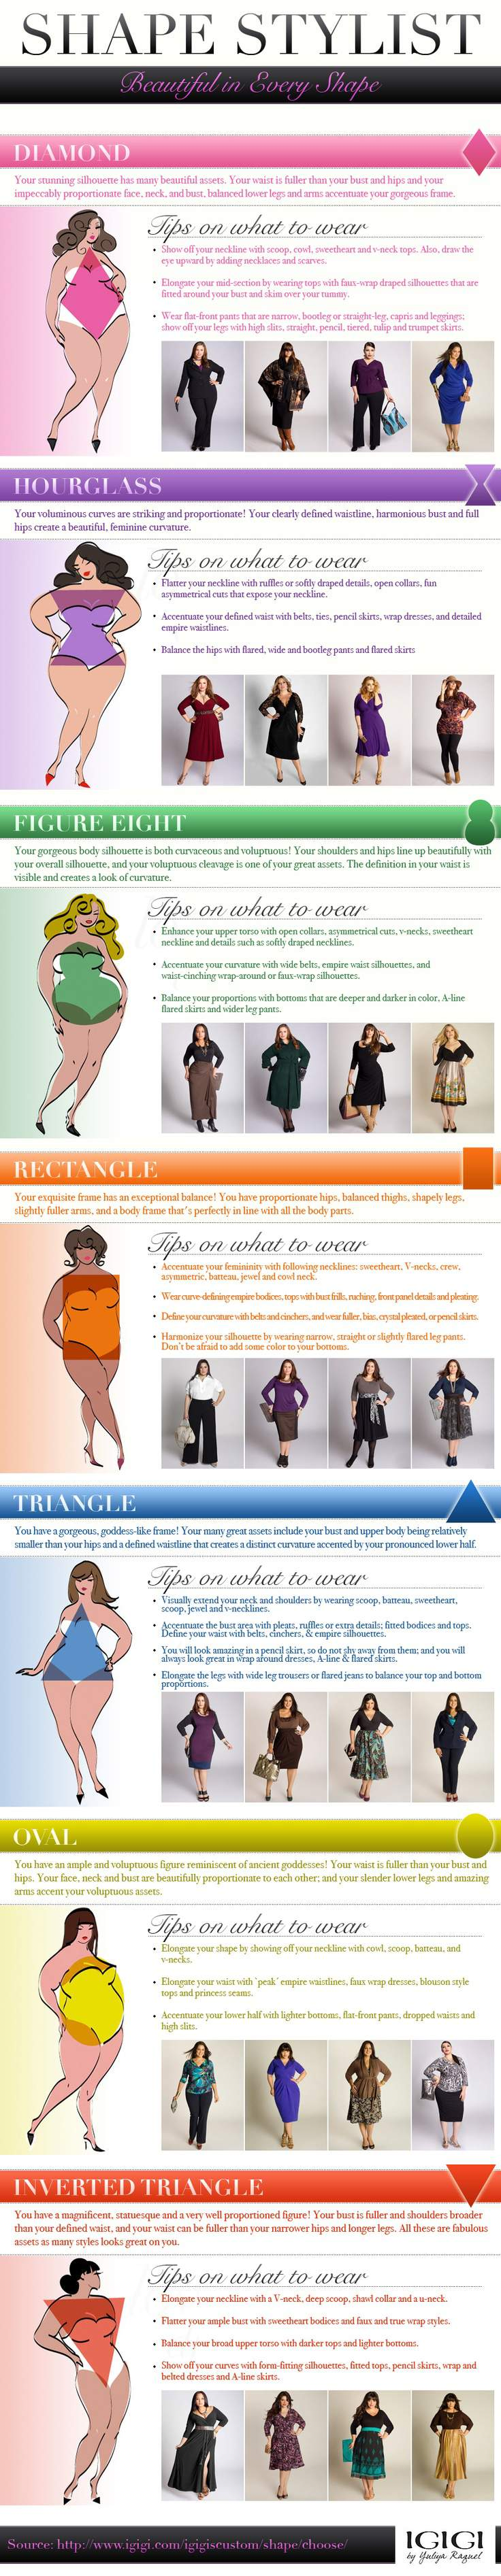 Plus Size Fashion Tips Dressing For Your Shape As A Plus Size Woman